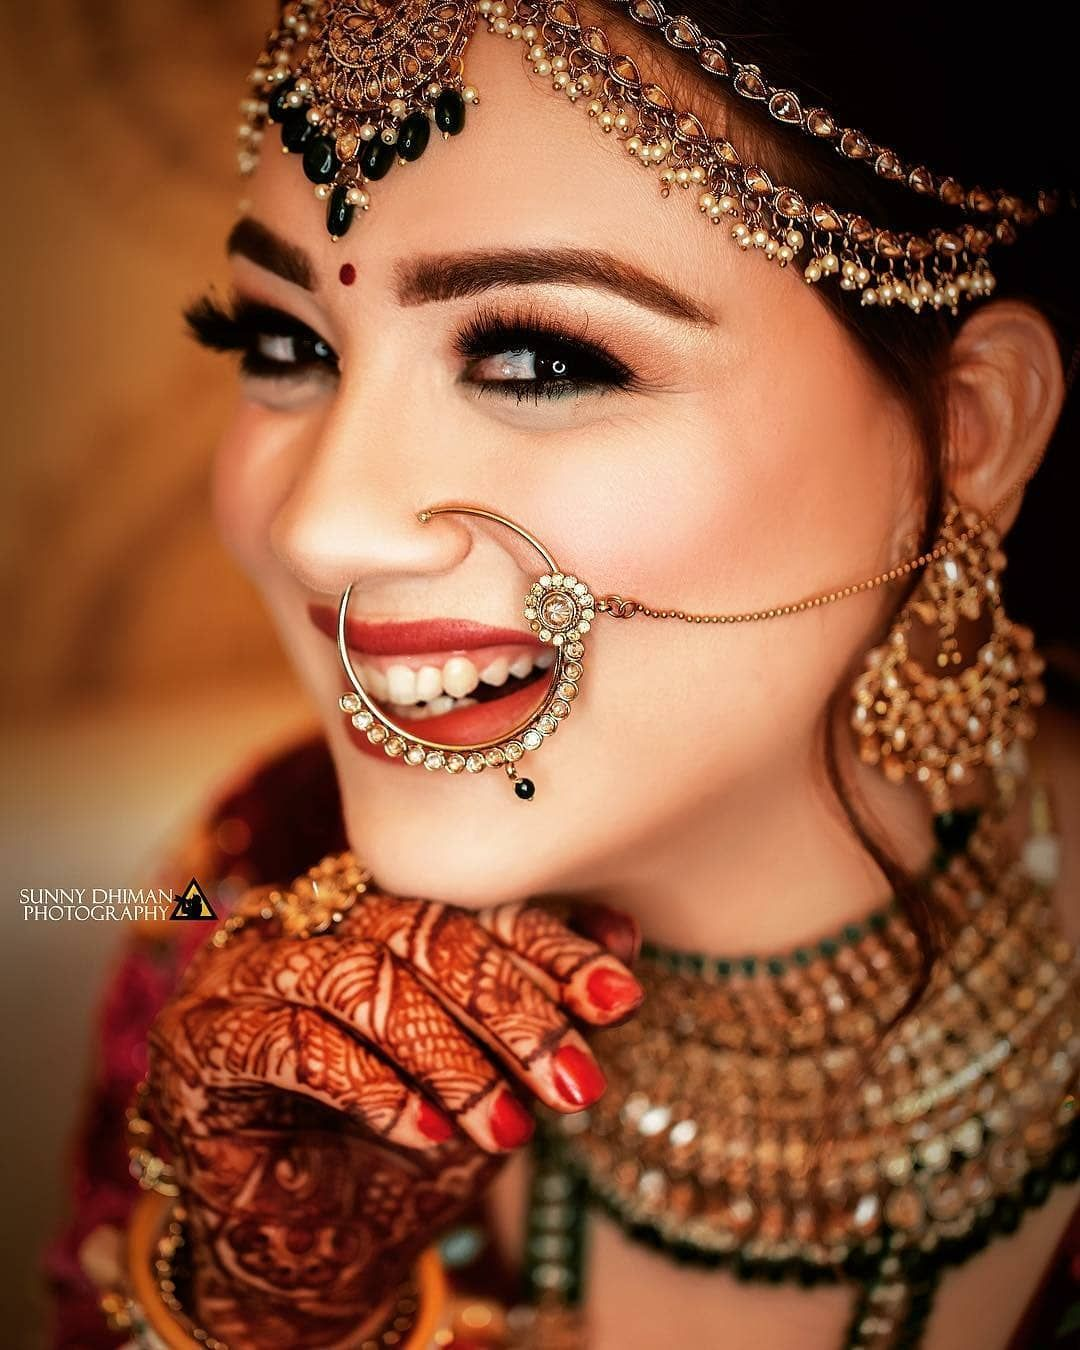 Bridal Fashion & Photographic Make up Artist